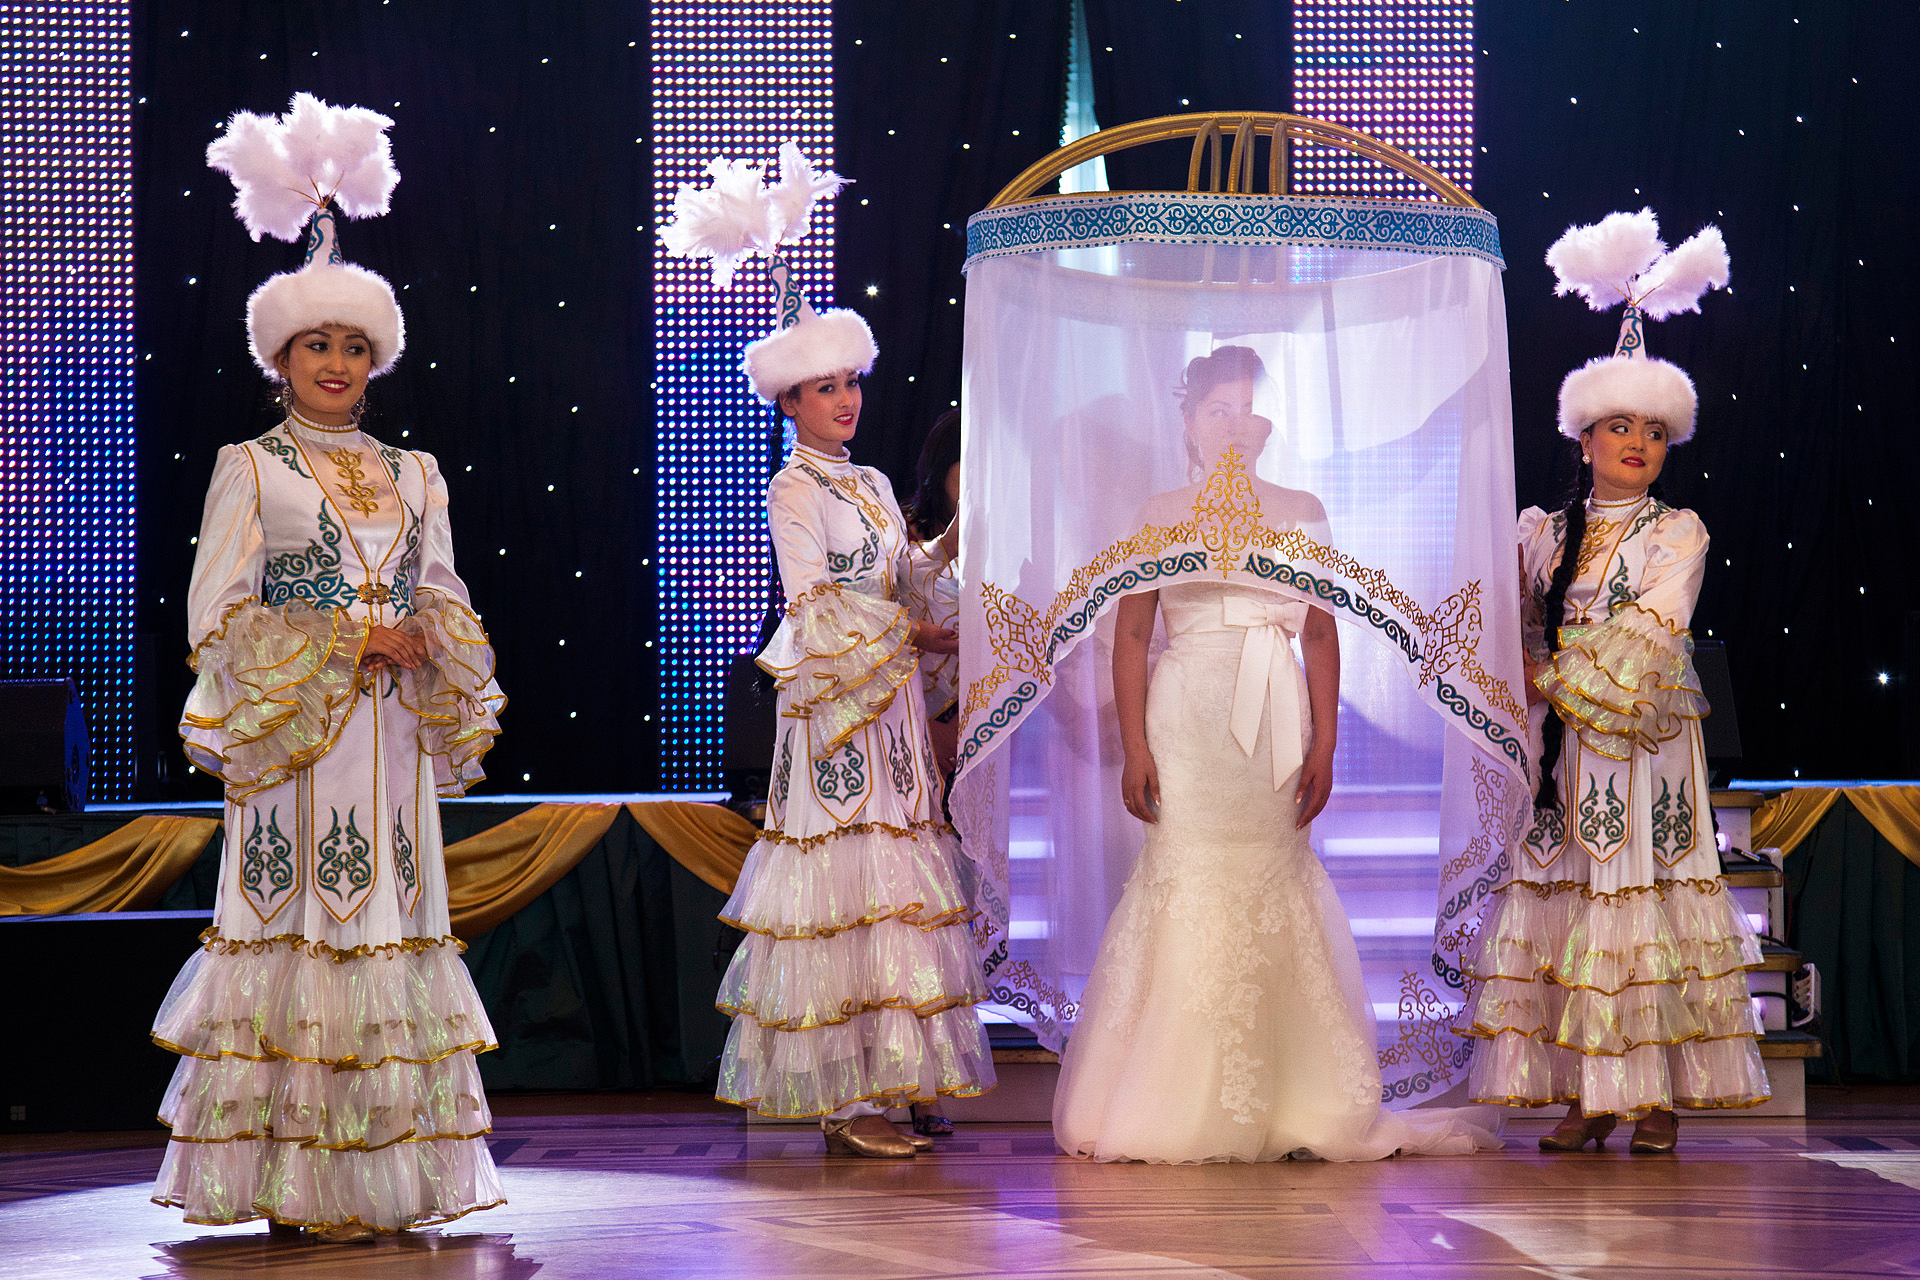 Flanked by traditional Kazakh dancers, a bride awaits her formal unveiling at an opulent wedding palace, where she has just been married in a ceremony capped by the release of two white doves. The revelry begins when the veil is lifted.  Astana, Kazakhstan